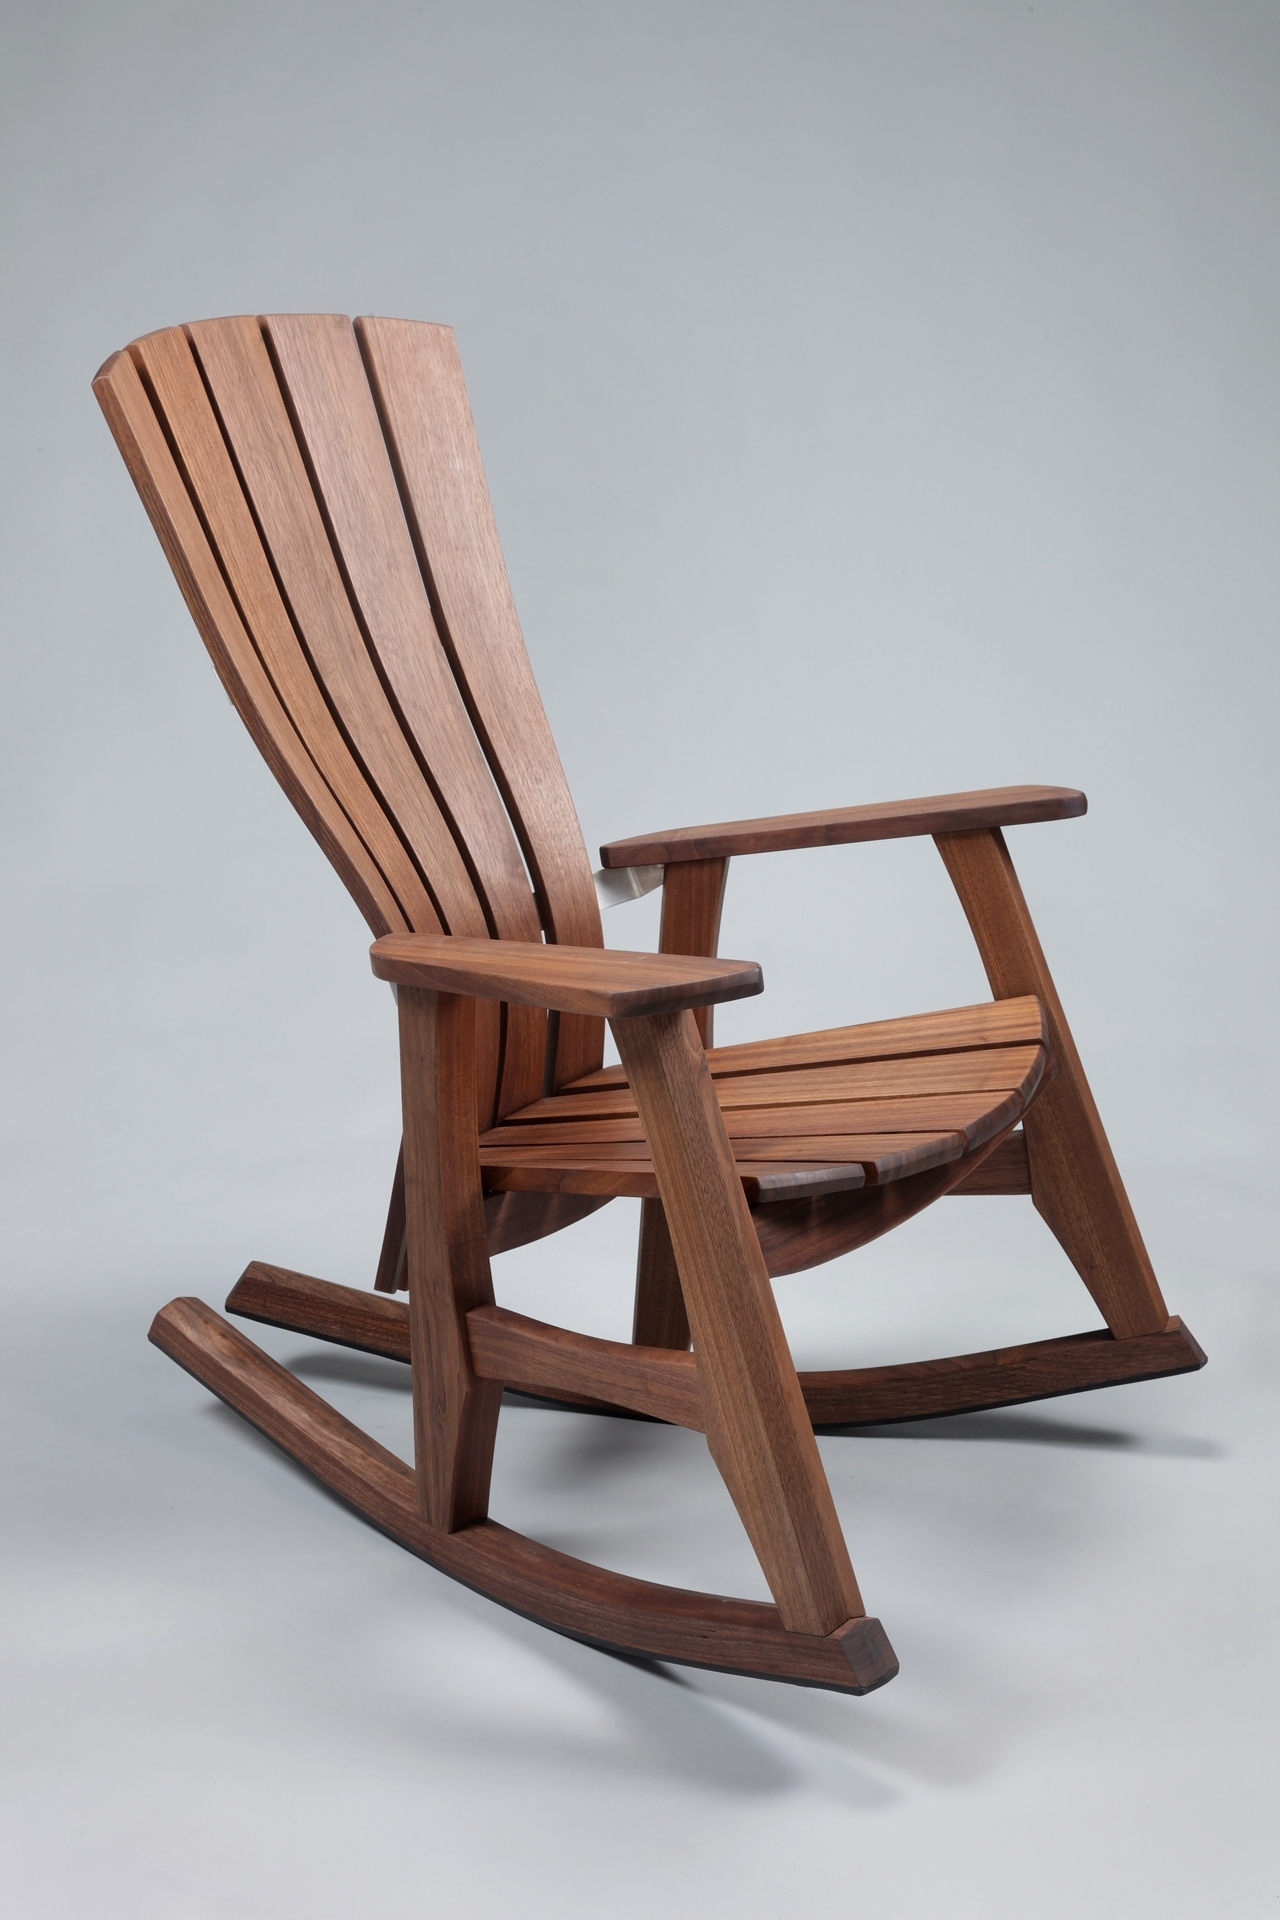 Most Popular Uncategorized : Wooden Porch Rocking Chairs In Lovely Outdoor White Inside Patio Wooden Rocking Chairs (View 14 of 15)